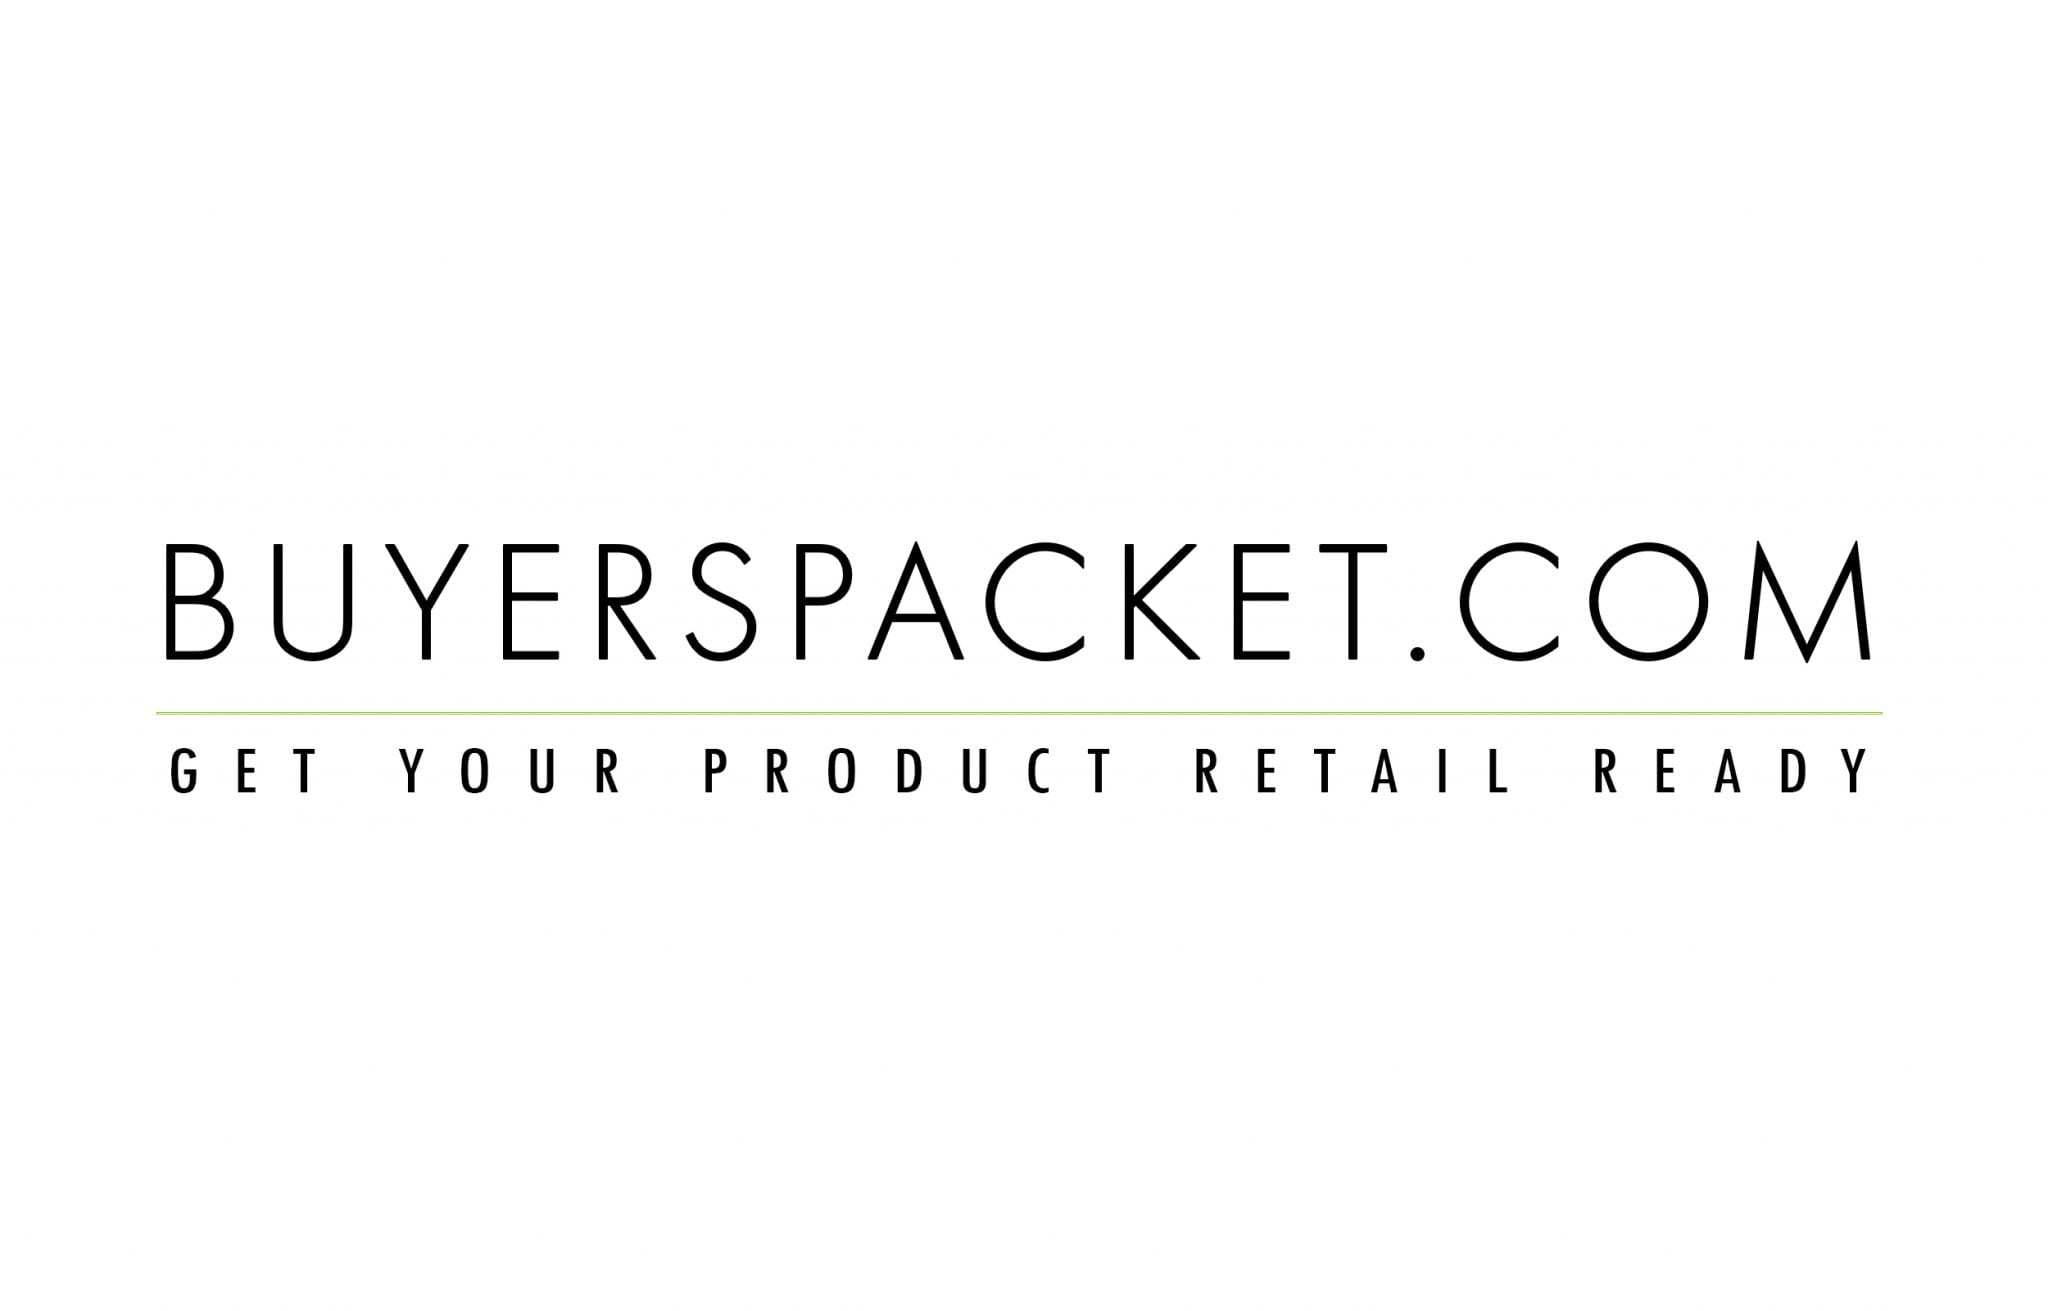 BuyersPacketLogo_GetRetailReady